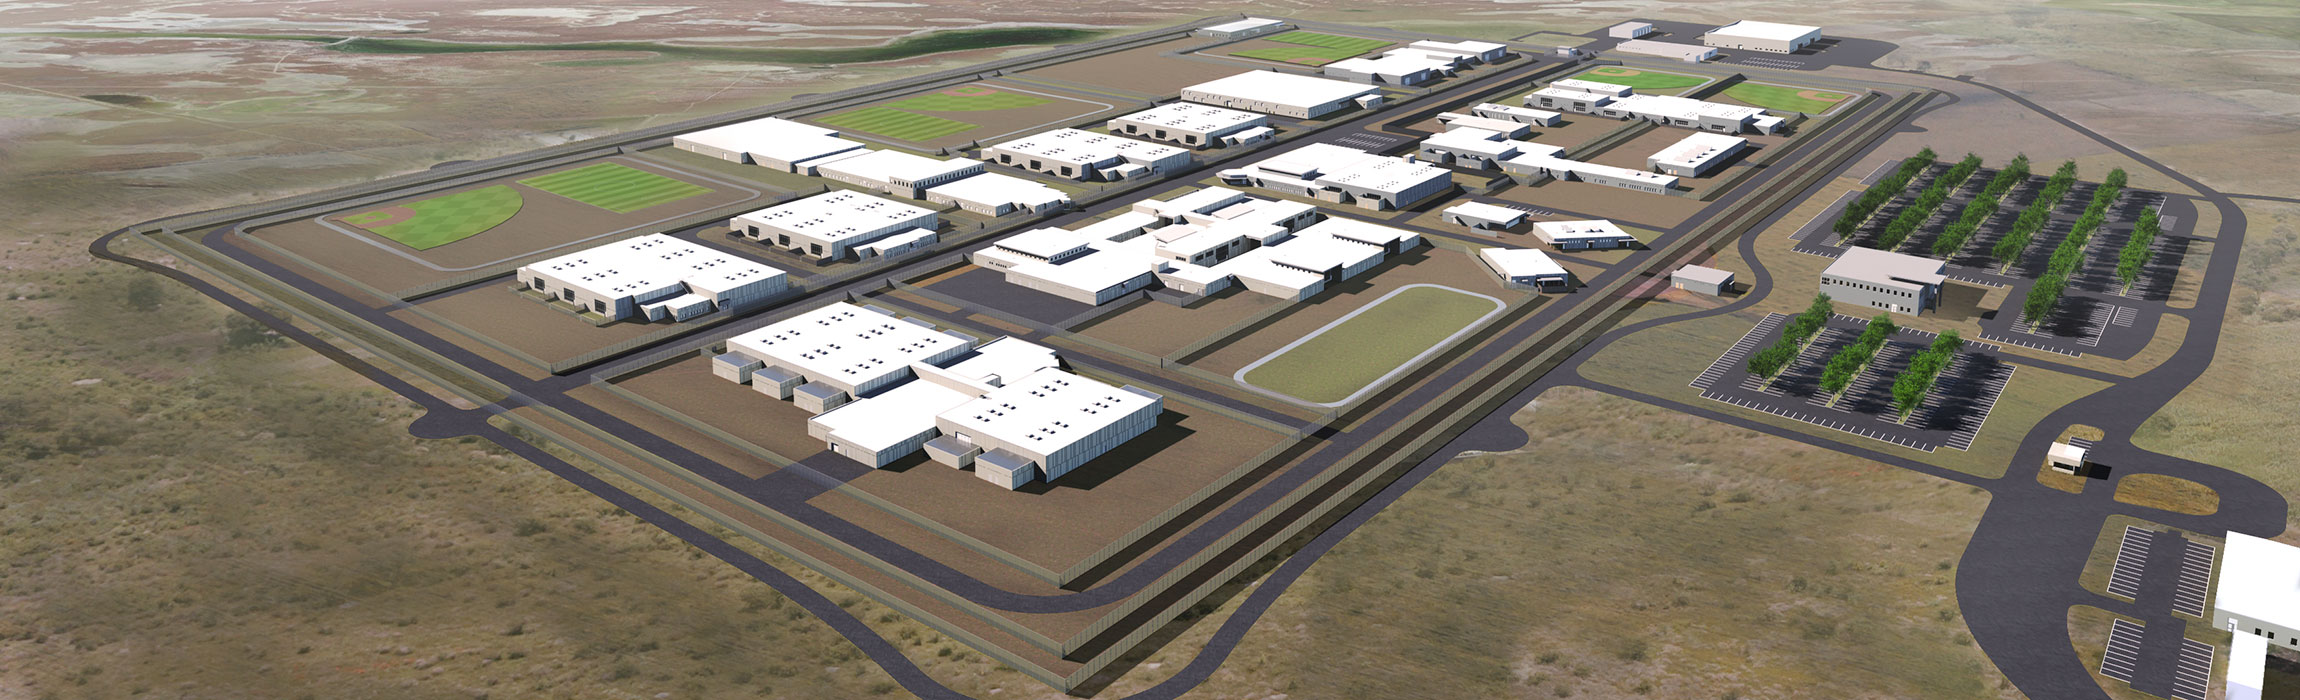 New Utah State Correctional Facility Rendering from May 9, 2018